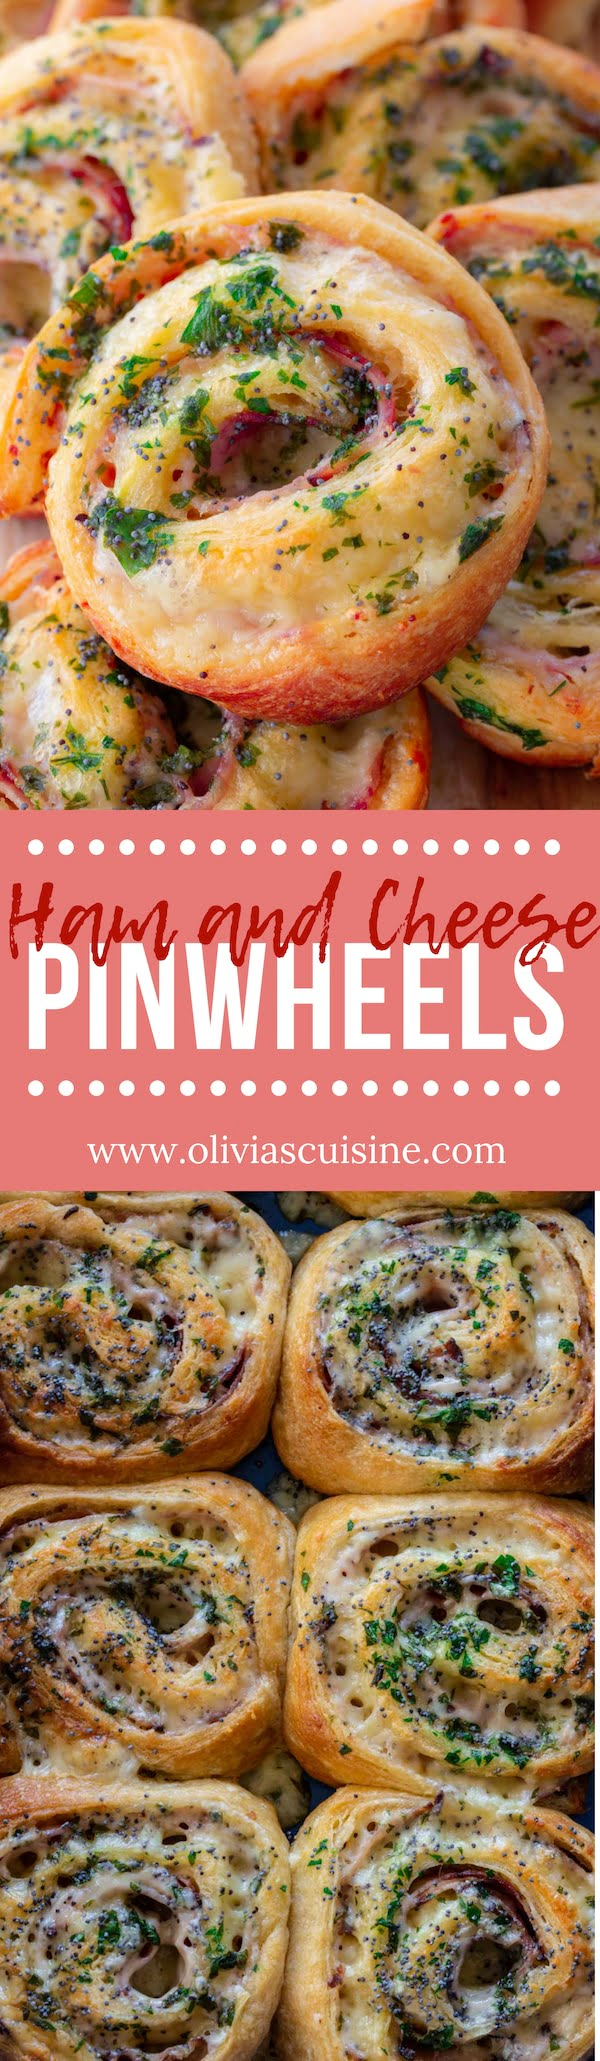 Baked Ham and Cheese Pinwheels | www.oliviascuisine.com | These Baked Ham and Cheese Pinwheels are the ultimate last-minute party snacks! Made with store-bought crescent dough and loaded with Dijon mayo, Black Forest ham and Gouda cheese. (Recipe and food photography by @oliviascuisine). #pinwheels #crescentdough #cheese #ham #snacks